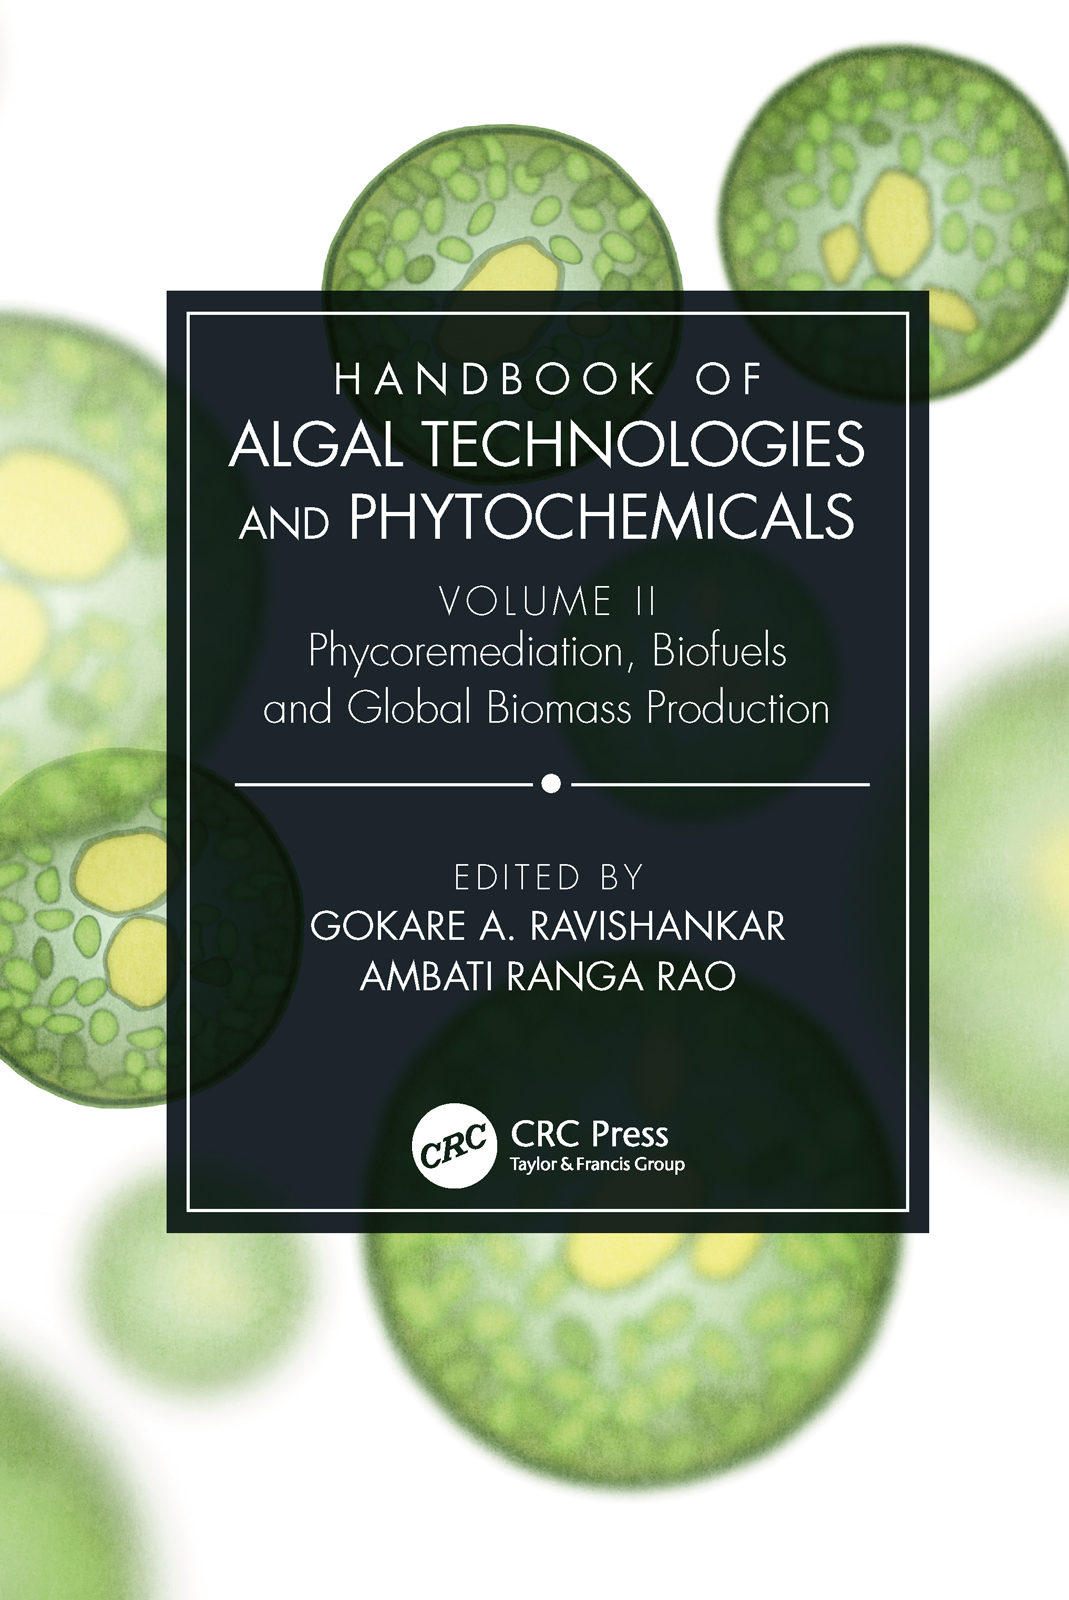 Handbook of Algal Technologies and Phytochemicals: Volume II Phycoremediation, Biofuels and Global Biomass Production book cover